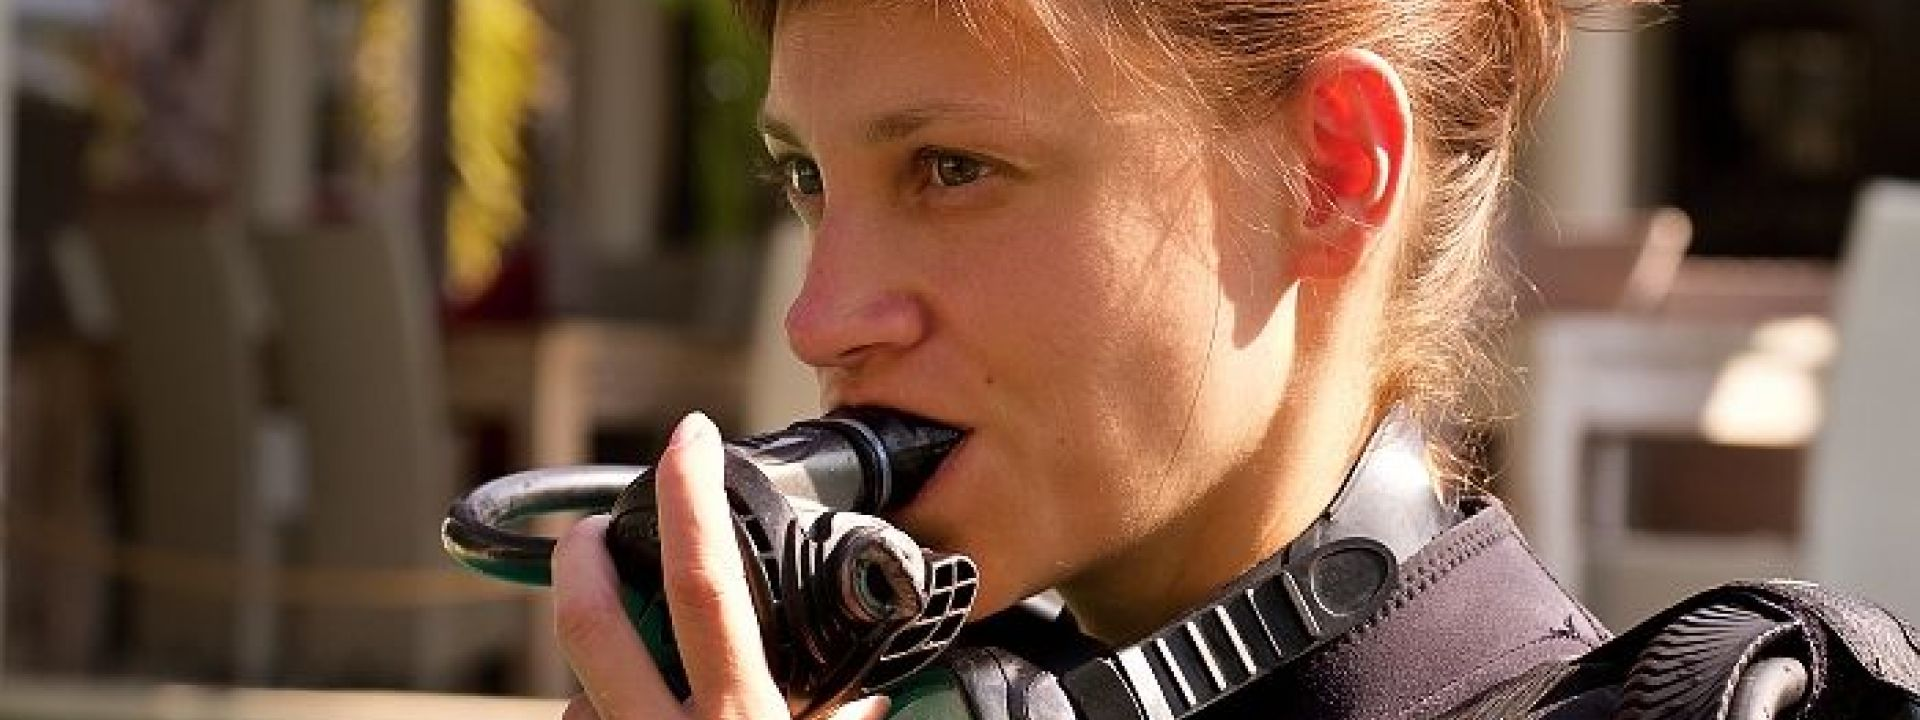 How to choose the right diving regulator mouthpiece